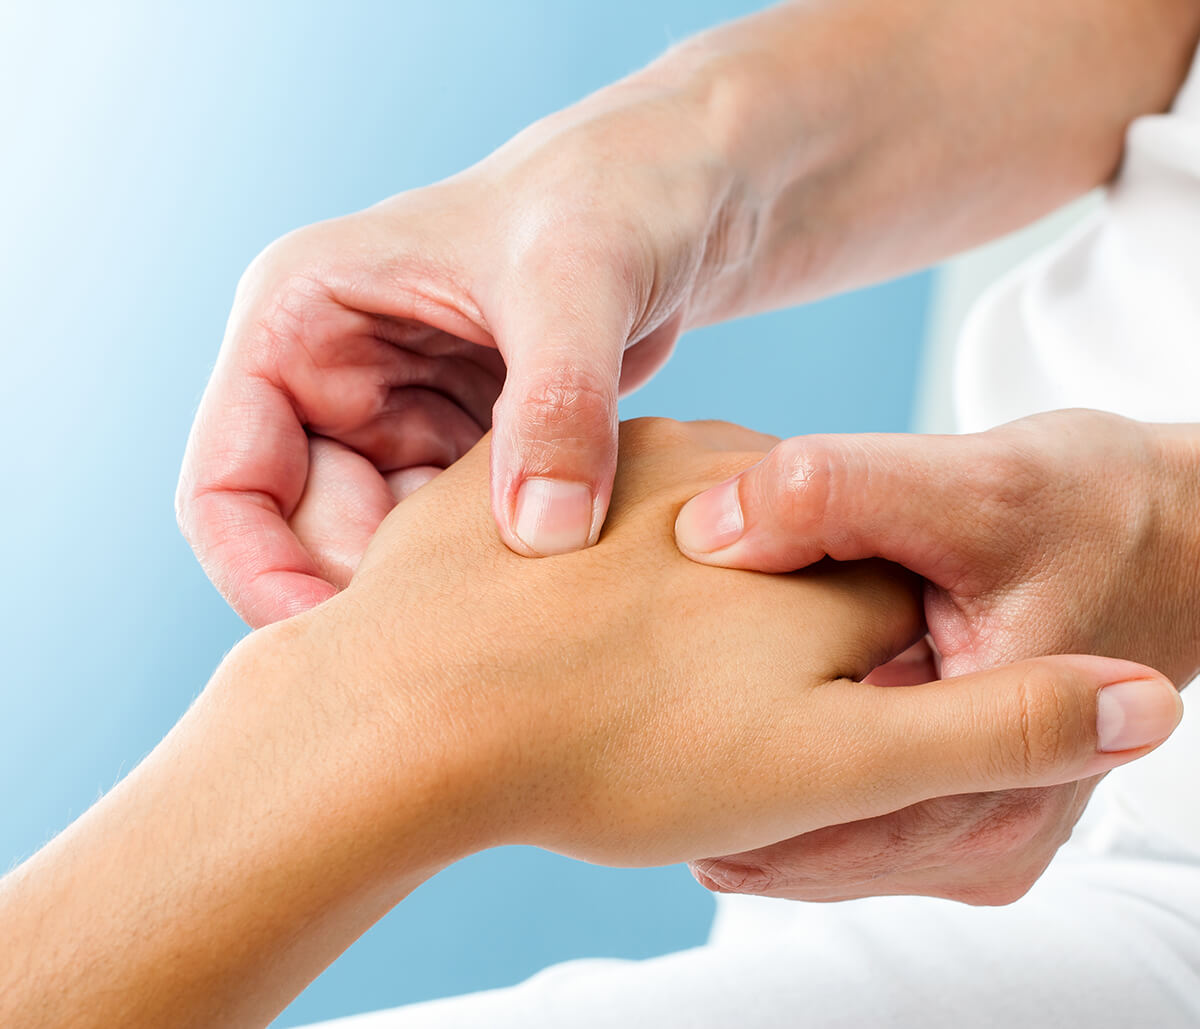 Encinitas, CA specialist offers effective pain relief, integrative treatment for Rheumatoid Arthritis